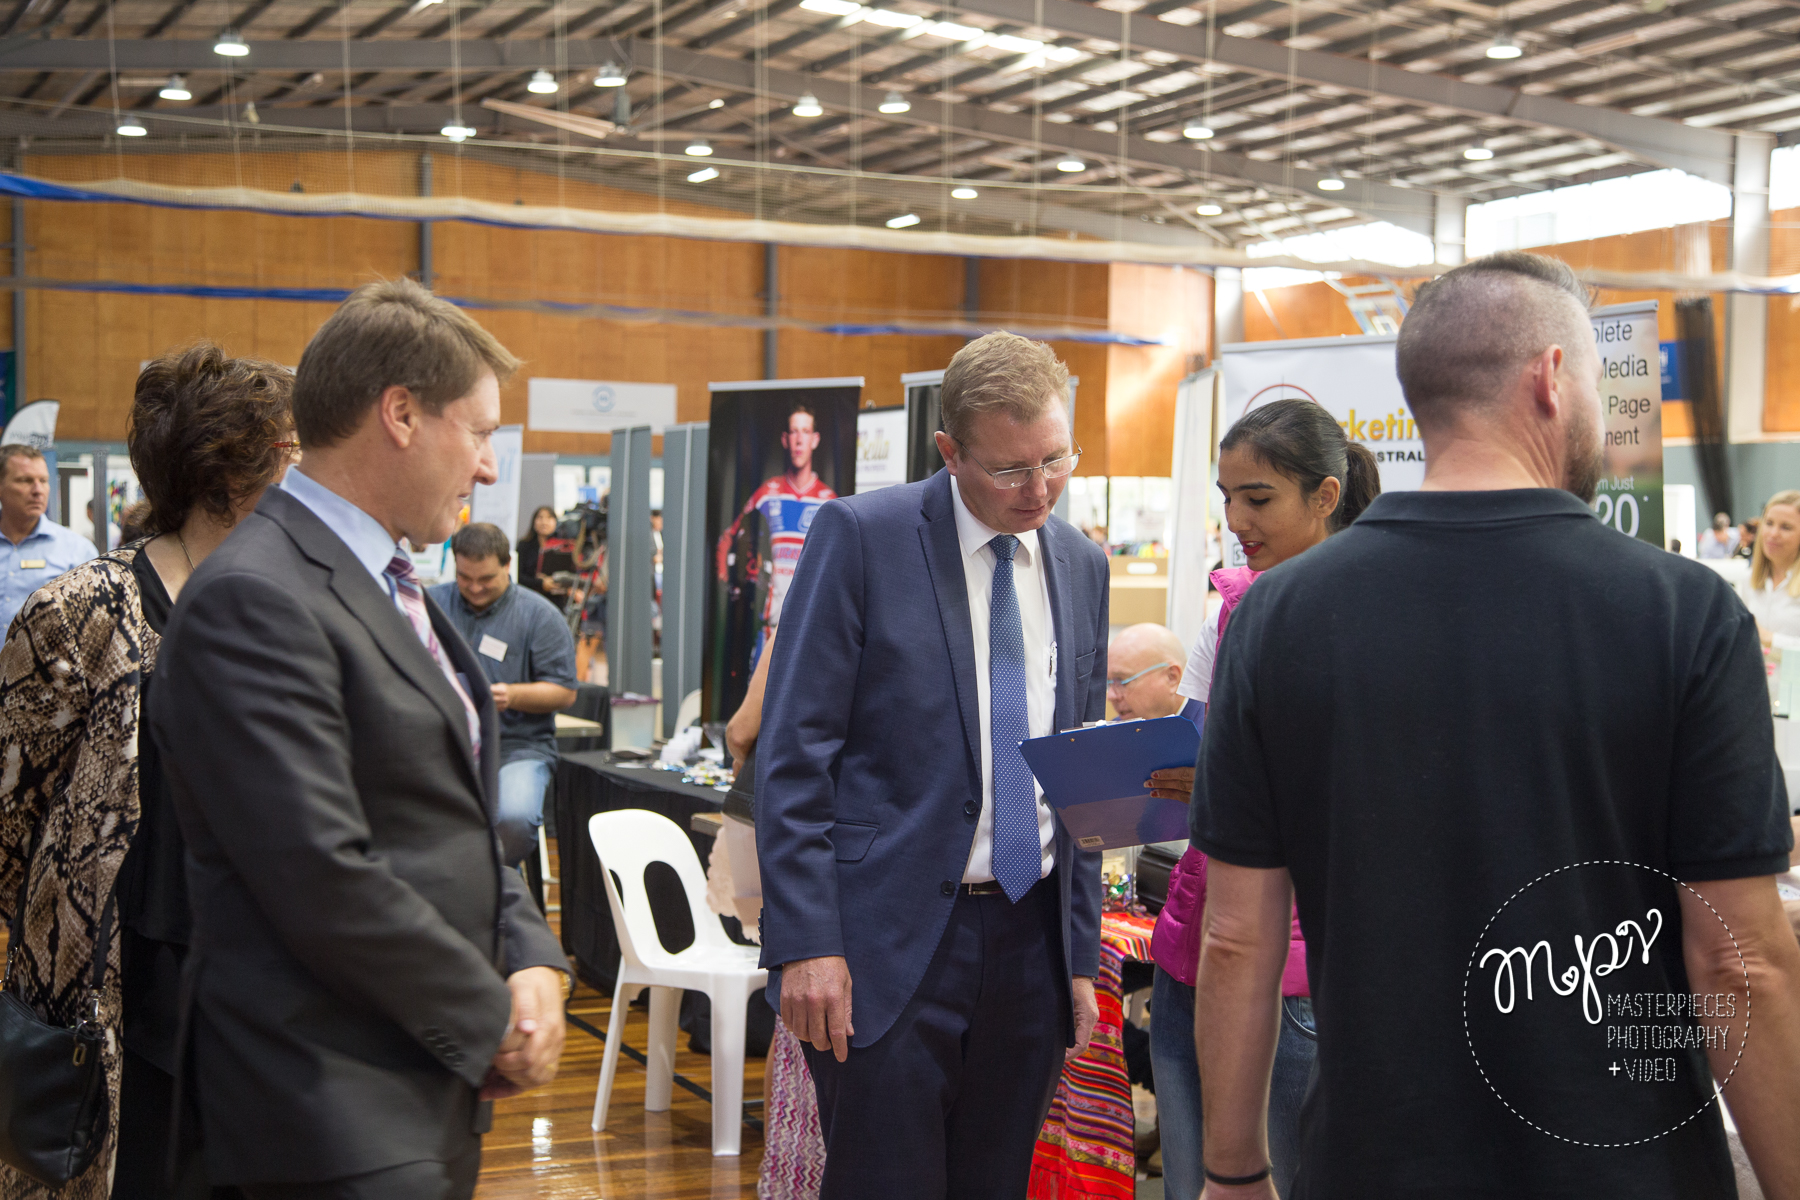 Business Expos | Brisbane | Gold Coast | Small Business Expos | Sbe Bne 15